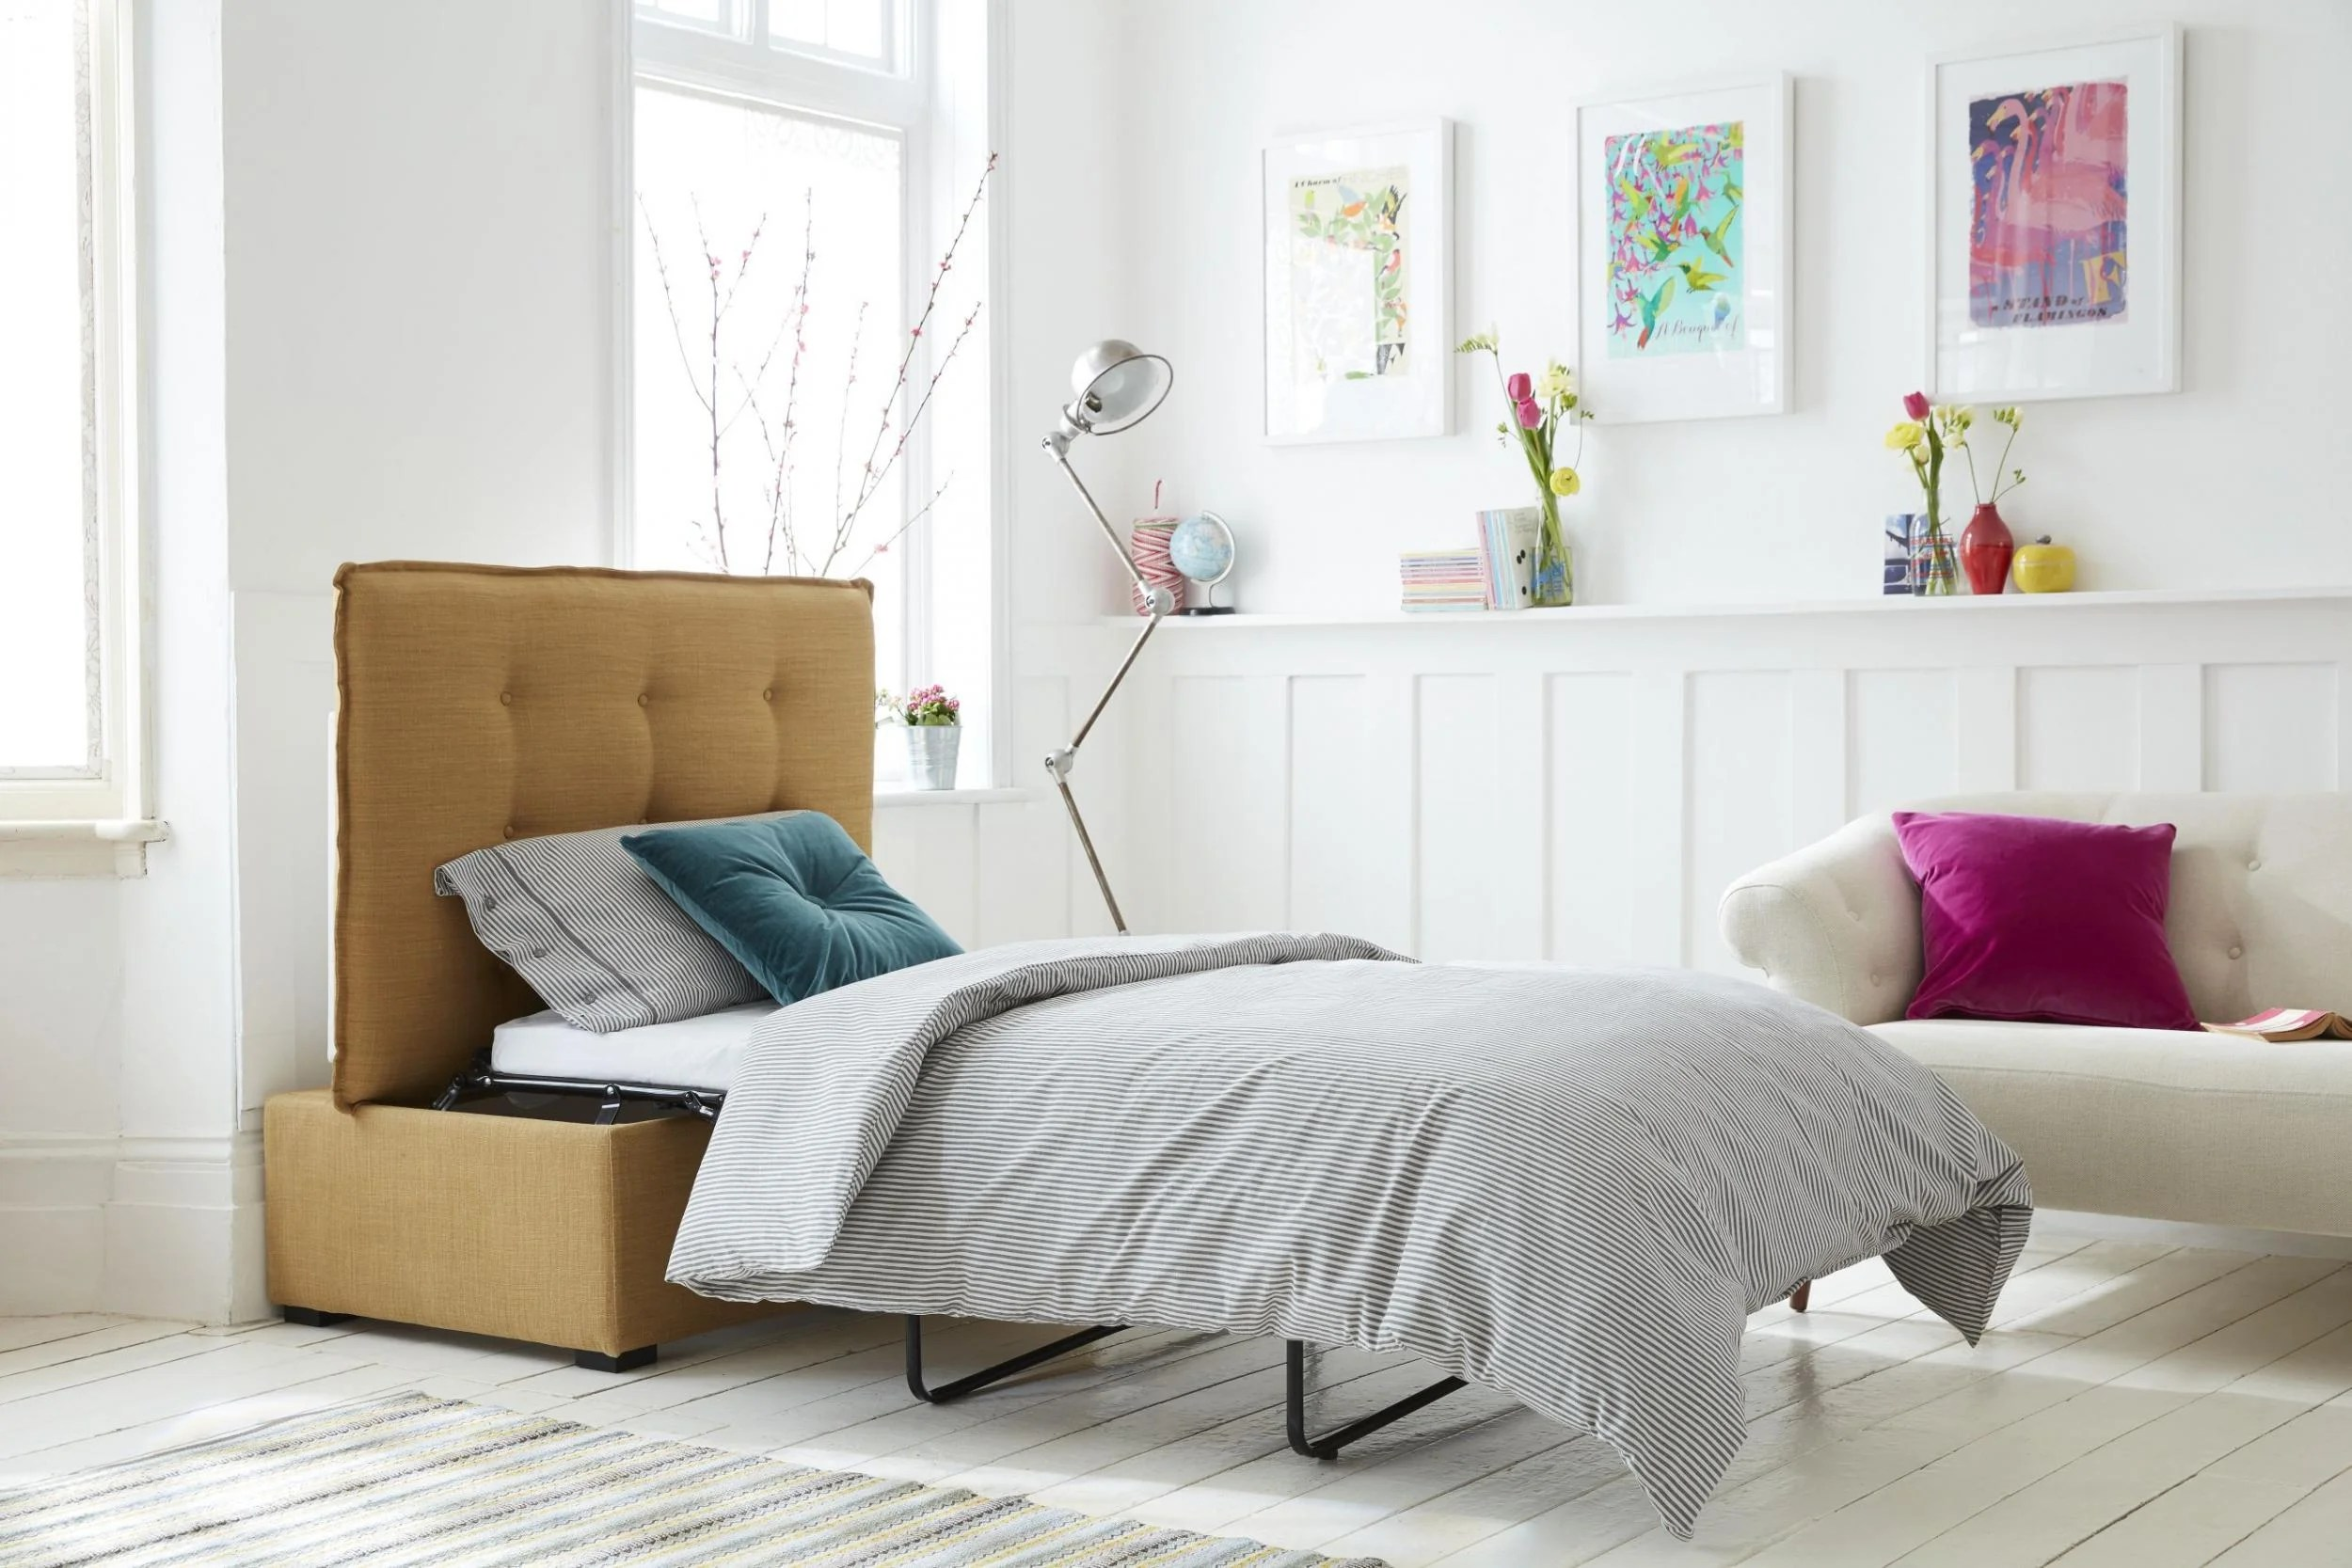 willow and hall sofa reviews pictures of small sectional sofas 12 best beds the independent com s hetty bed in a box is winner for owners or renters smaller homes it single pull out that folds back into an impressively compact